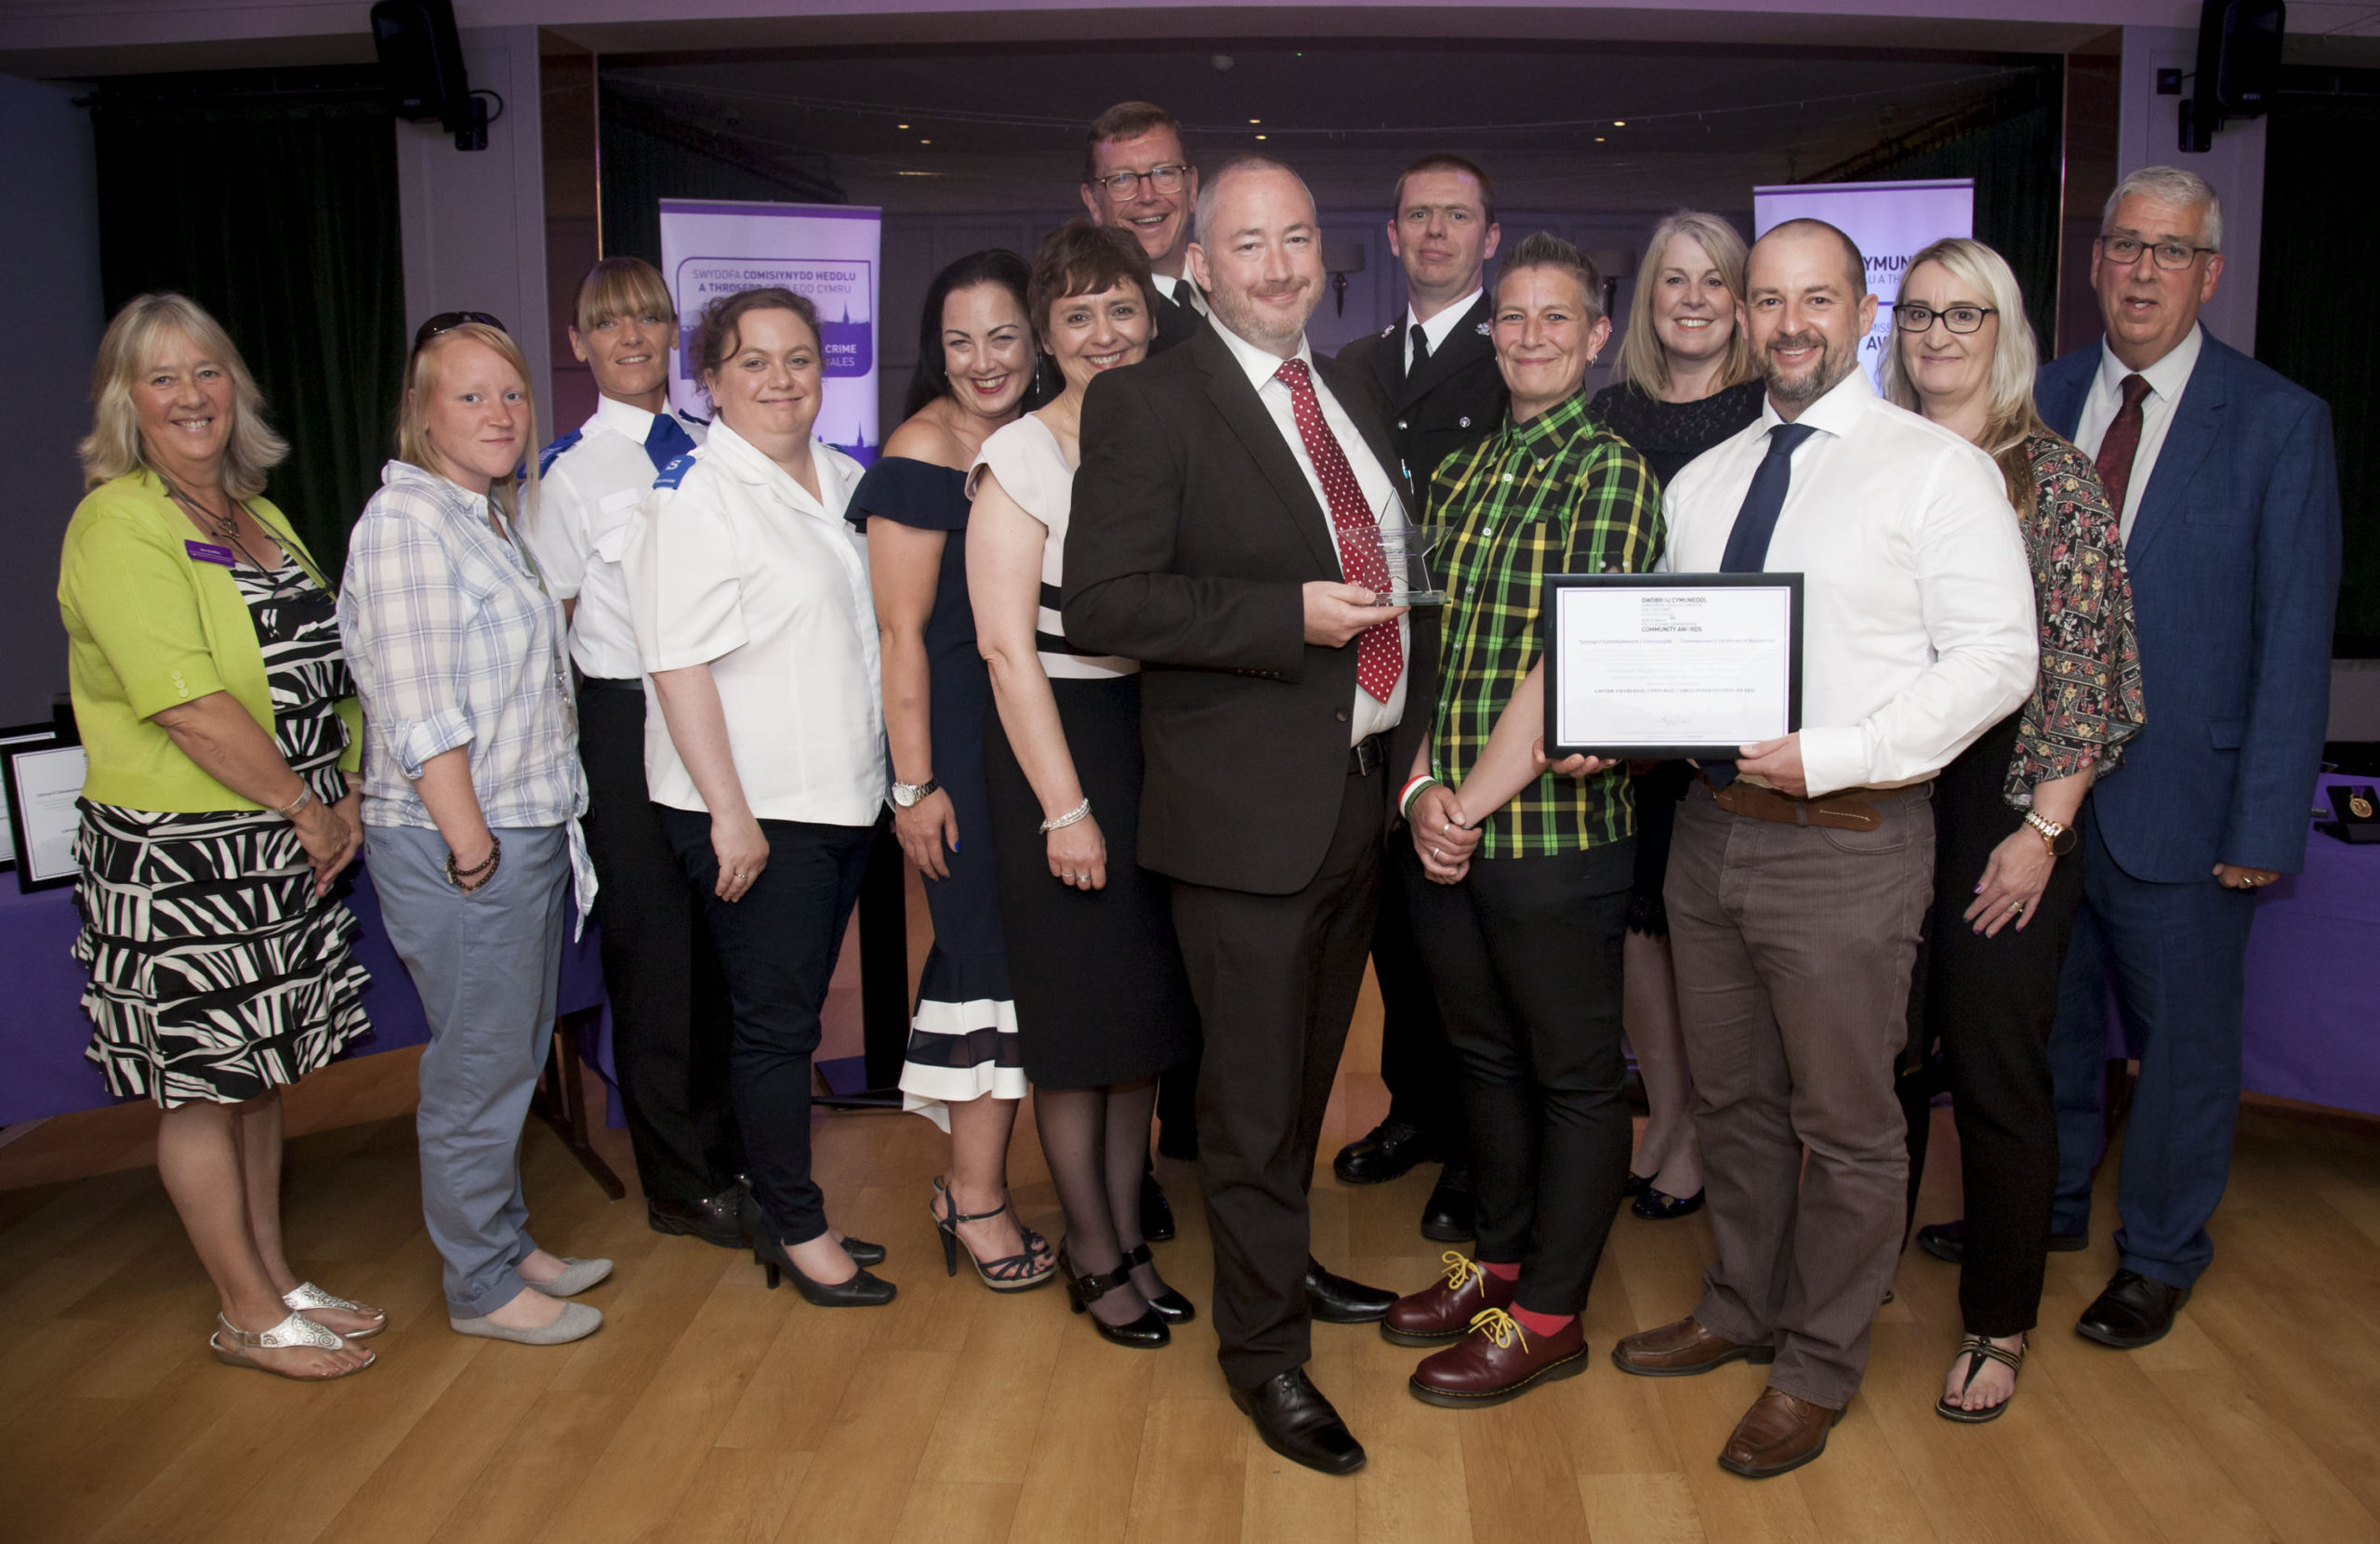 Pictured presenting the Drug Intervention Award to the Wrexham NPS Task Force is North Wales Police and Crime Commissioner Arfon Jones with, from left, Deputy Commissioner Ann Griffith, Katie Harman, NACRO; PCSO Stacey Hughes, Karen Edwards, Salvation Army; Tanya Jones, The Wallich; Rhian Jones, Wrexham County Borough Council; Inspector Paul Wycherley; Steve Campbell, Cais; PC Dave Evans; Wendy Baker and Dr Karen Sankey, Betsi Cadwaladr Community Health Board; Paul Thorpe and Tracey Sutton, both Wrexham County Borough Council.